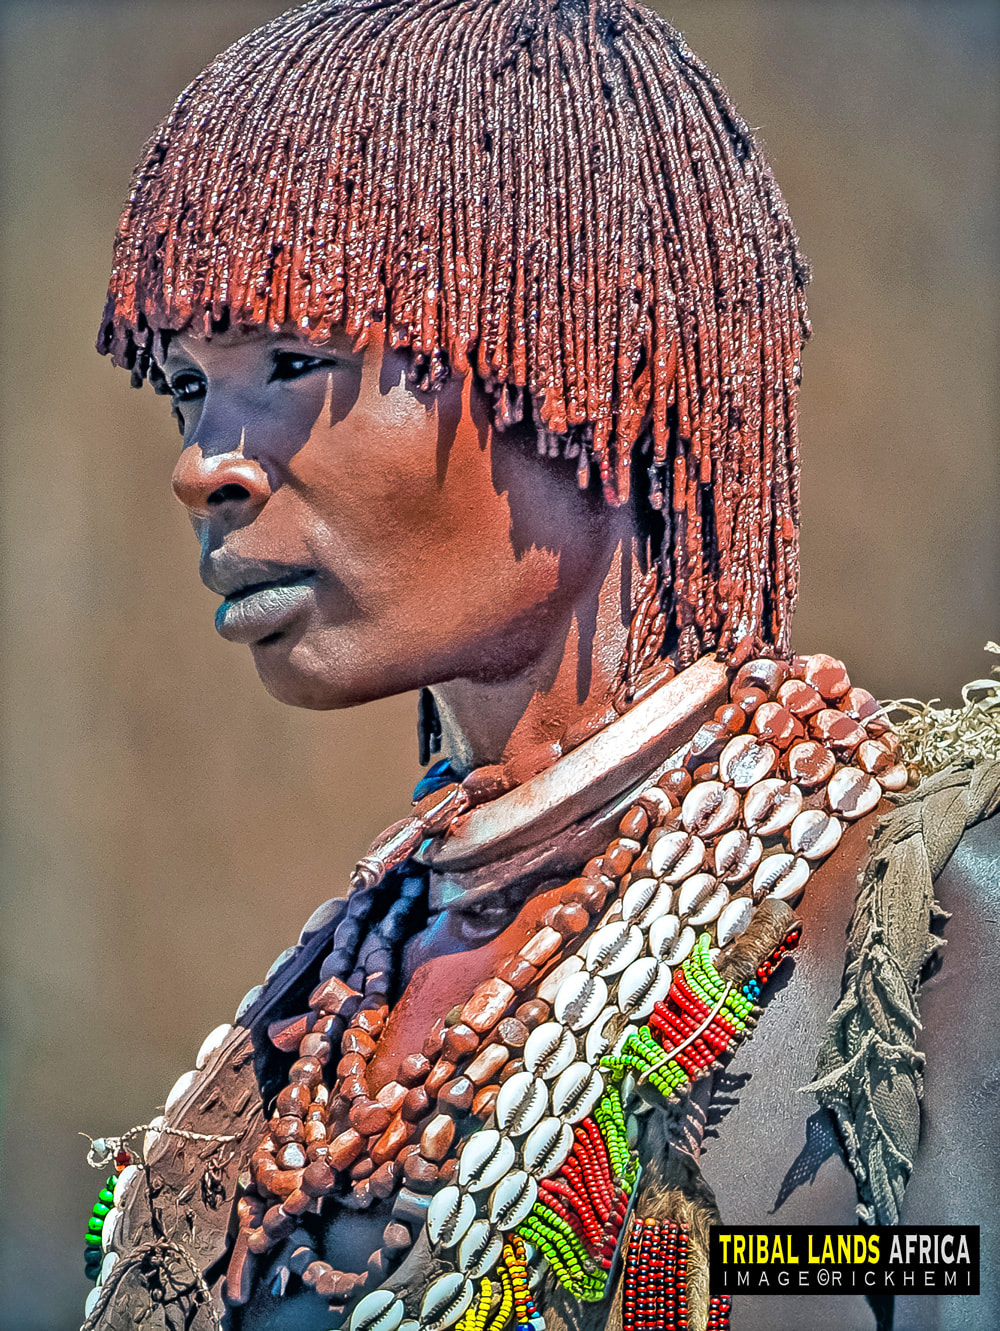 overland travel tribal lands Africa, image by Rick Hemi